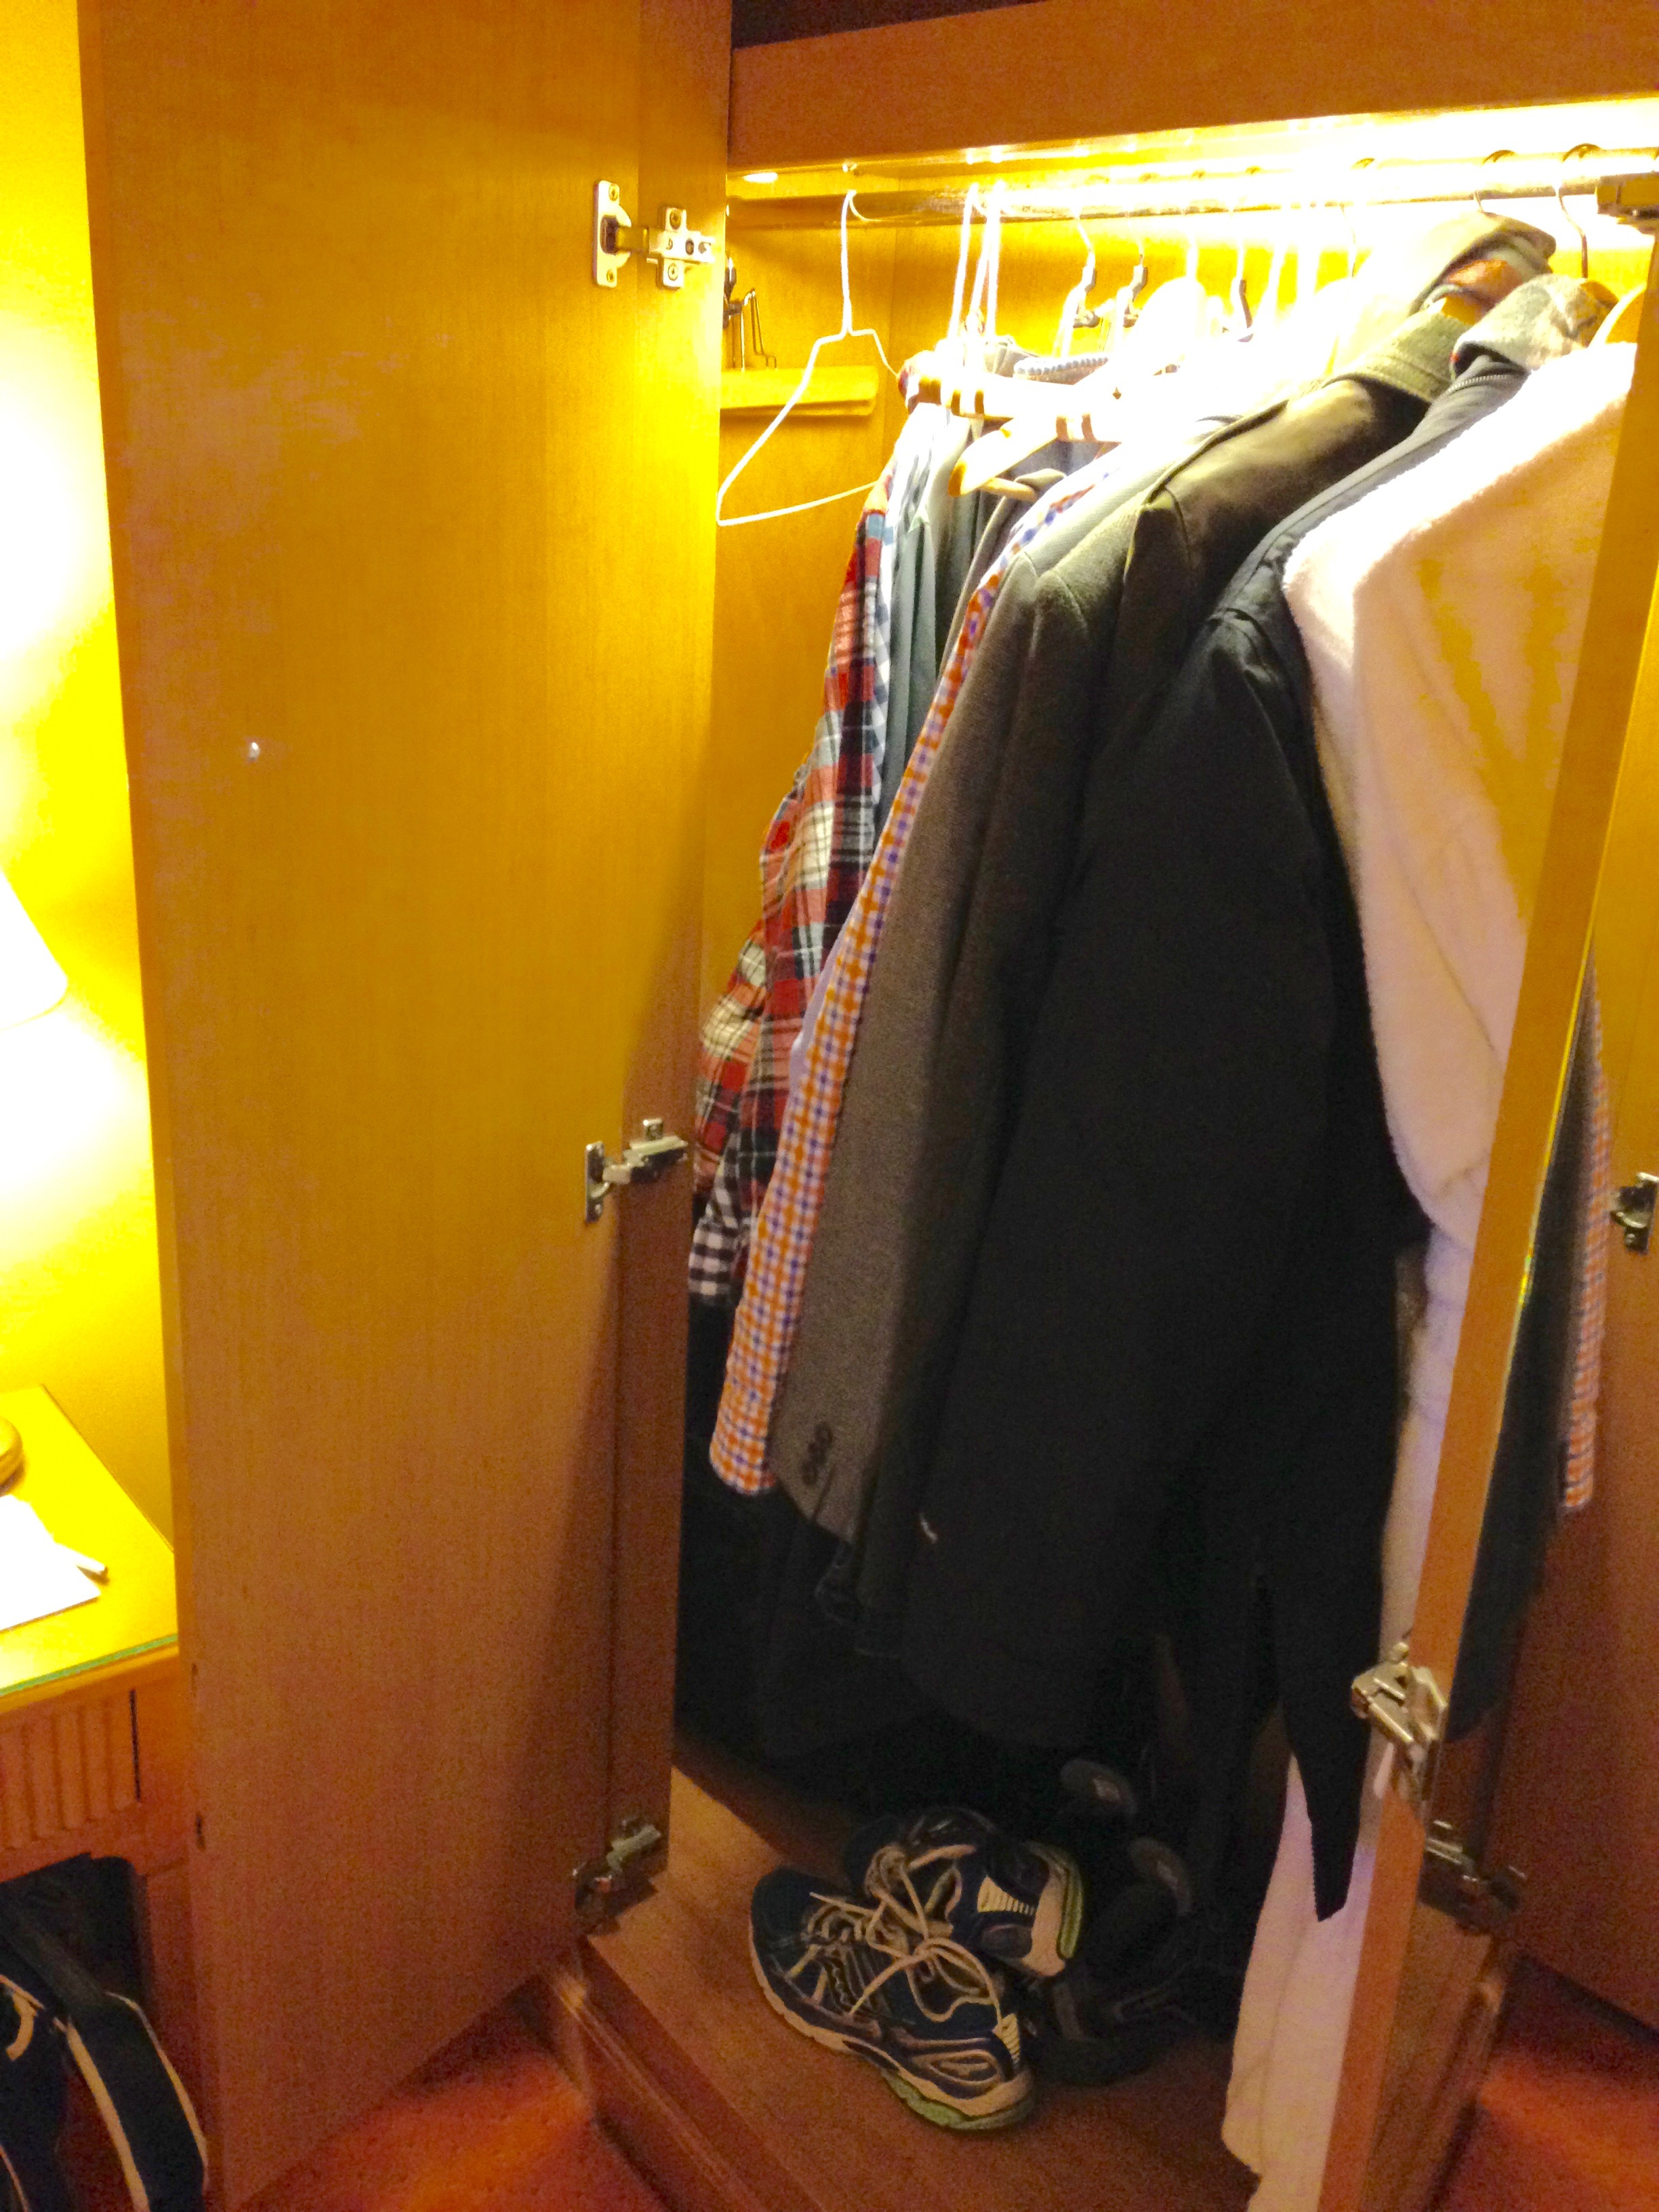 Hyatt Regency Paris Etoile Club Room Closet Space